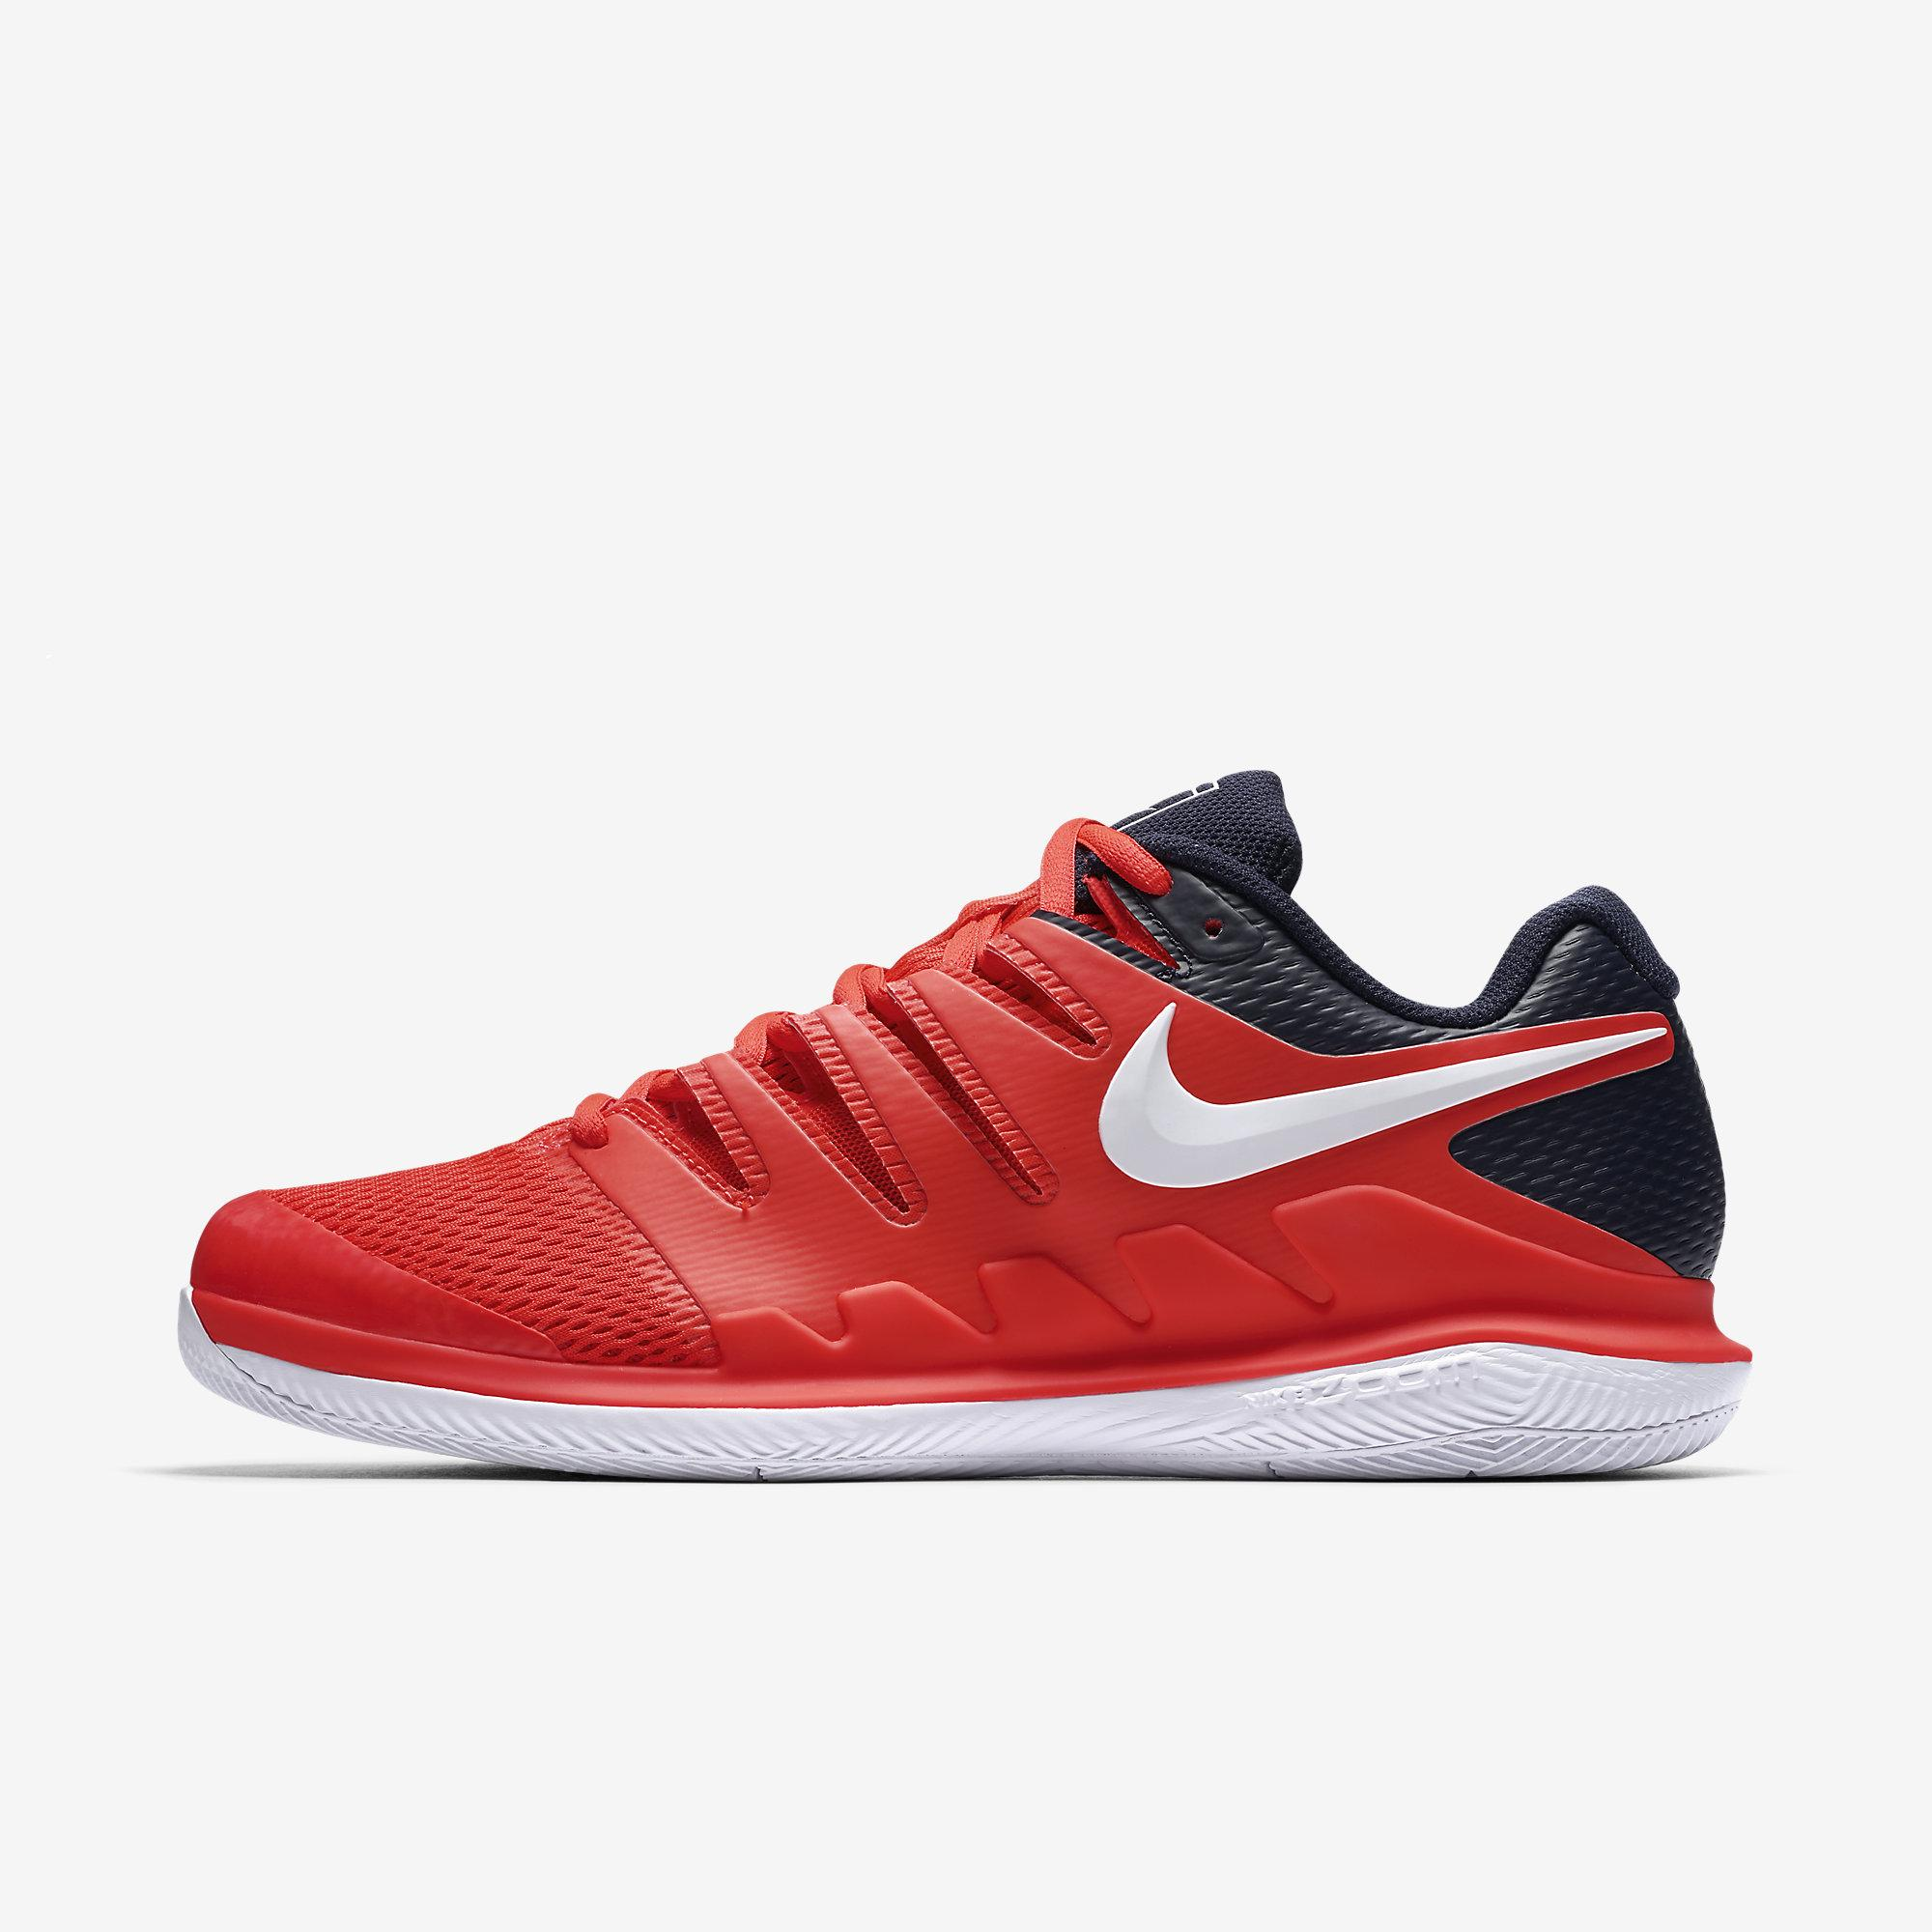 6f5ec5a5280f Nike Mens Air Zoom Vapor X Tennis Shoes - Bright Crimson Blackened Blue -  Tennisnuts.com